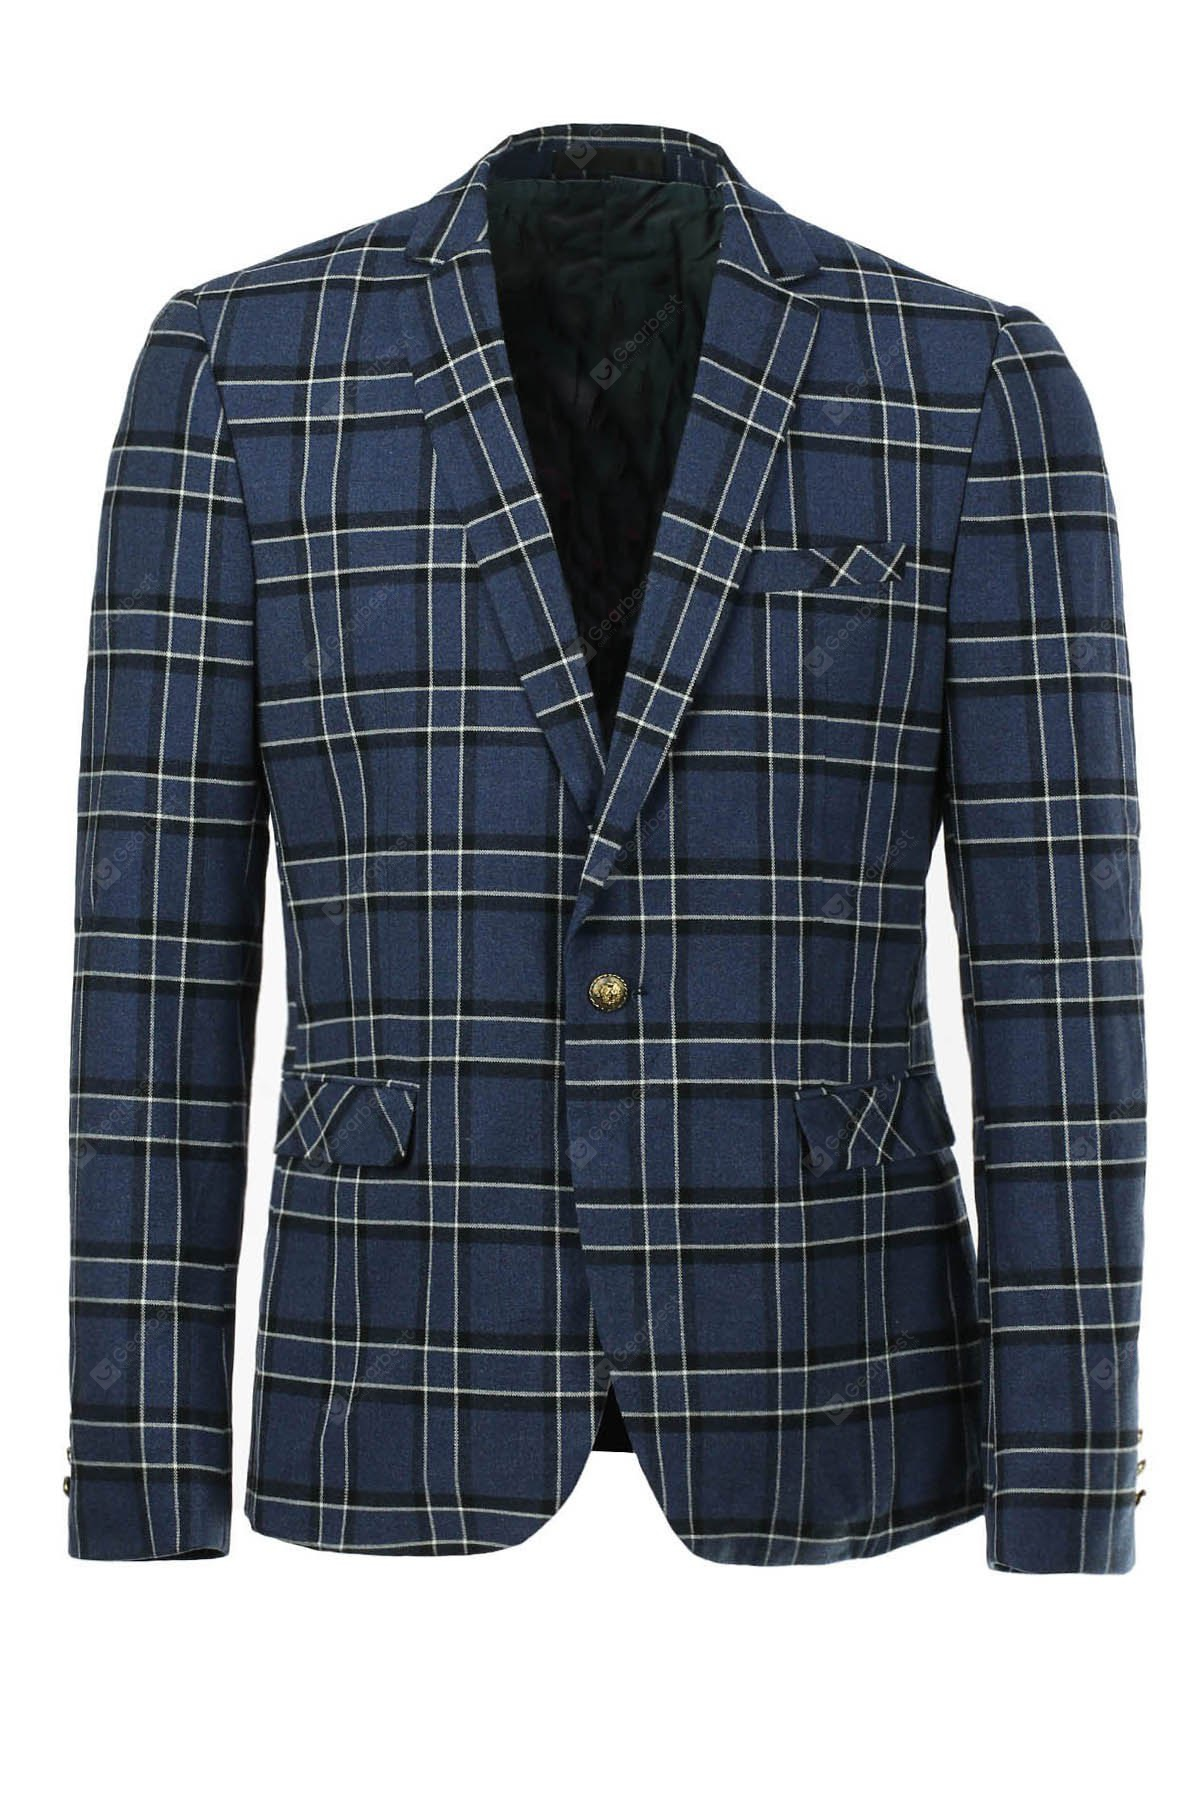 Blue Slim Fit Long Sleeves Checked Single Button Blazer Men-46.28 Online Shopping GearBest.com